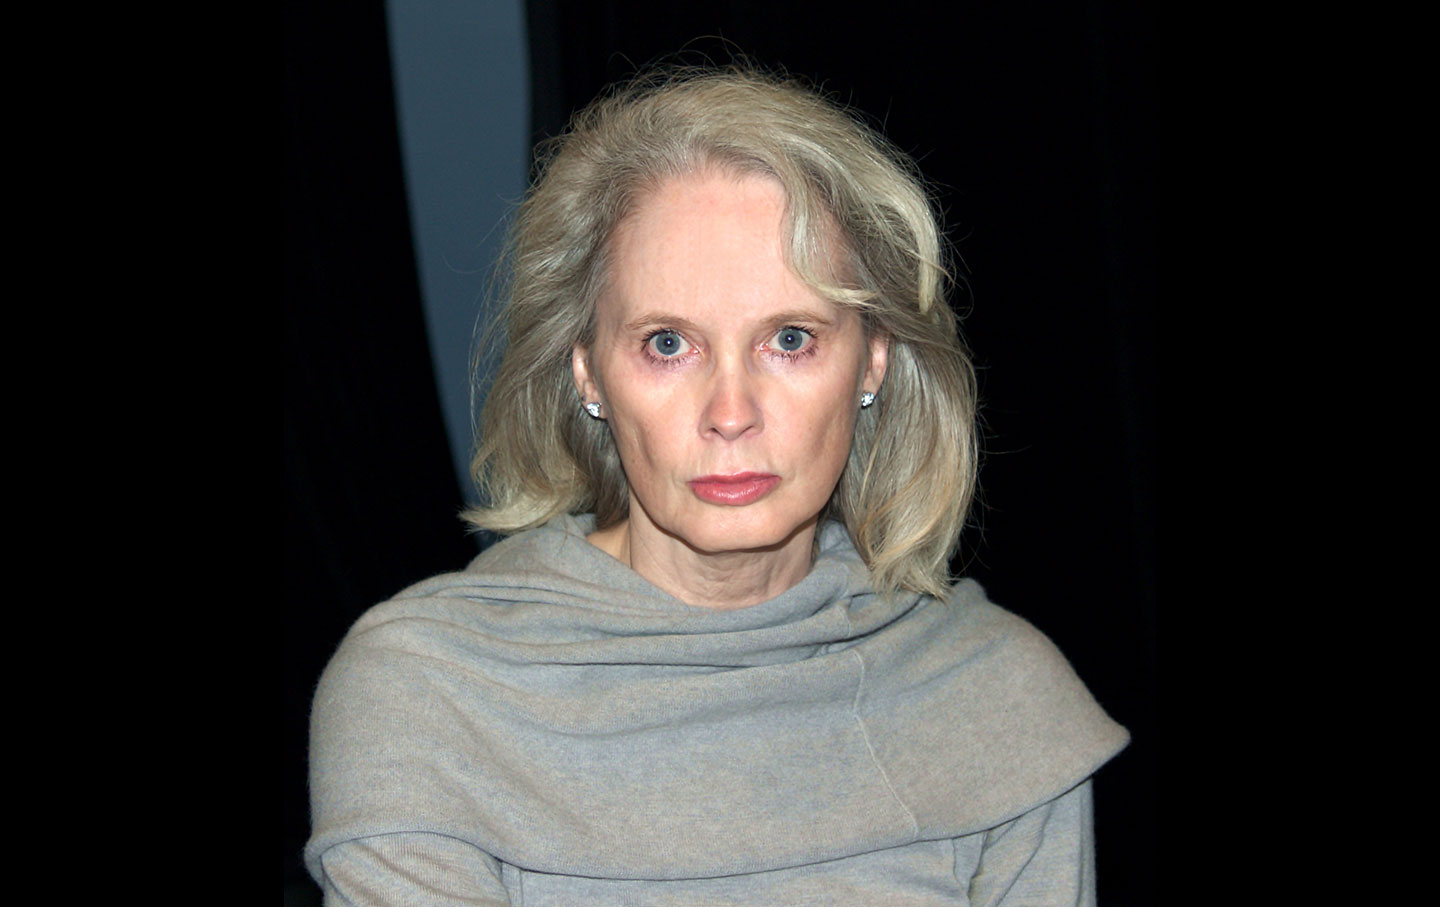 mary gaitskill essays Her stories and essays have appeared in the new yorker, harper's magazine, esquire, the best american short stories (1993), and the o henry prize stories (1998) her story secretary was the basis for the film of the same name.